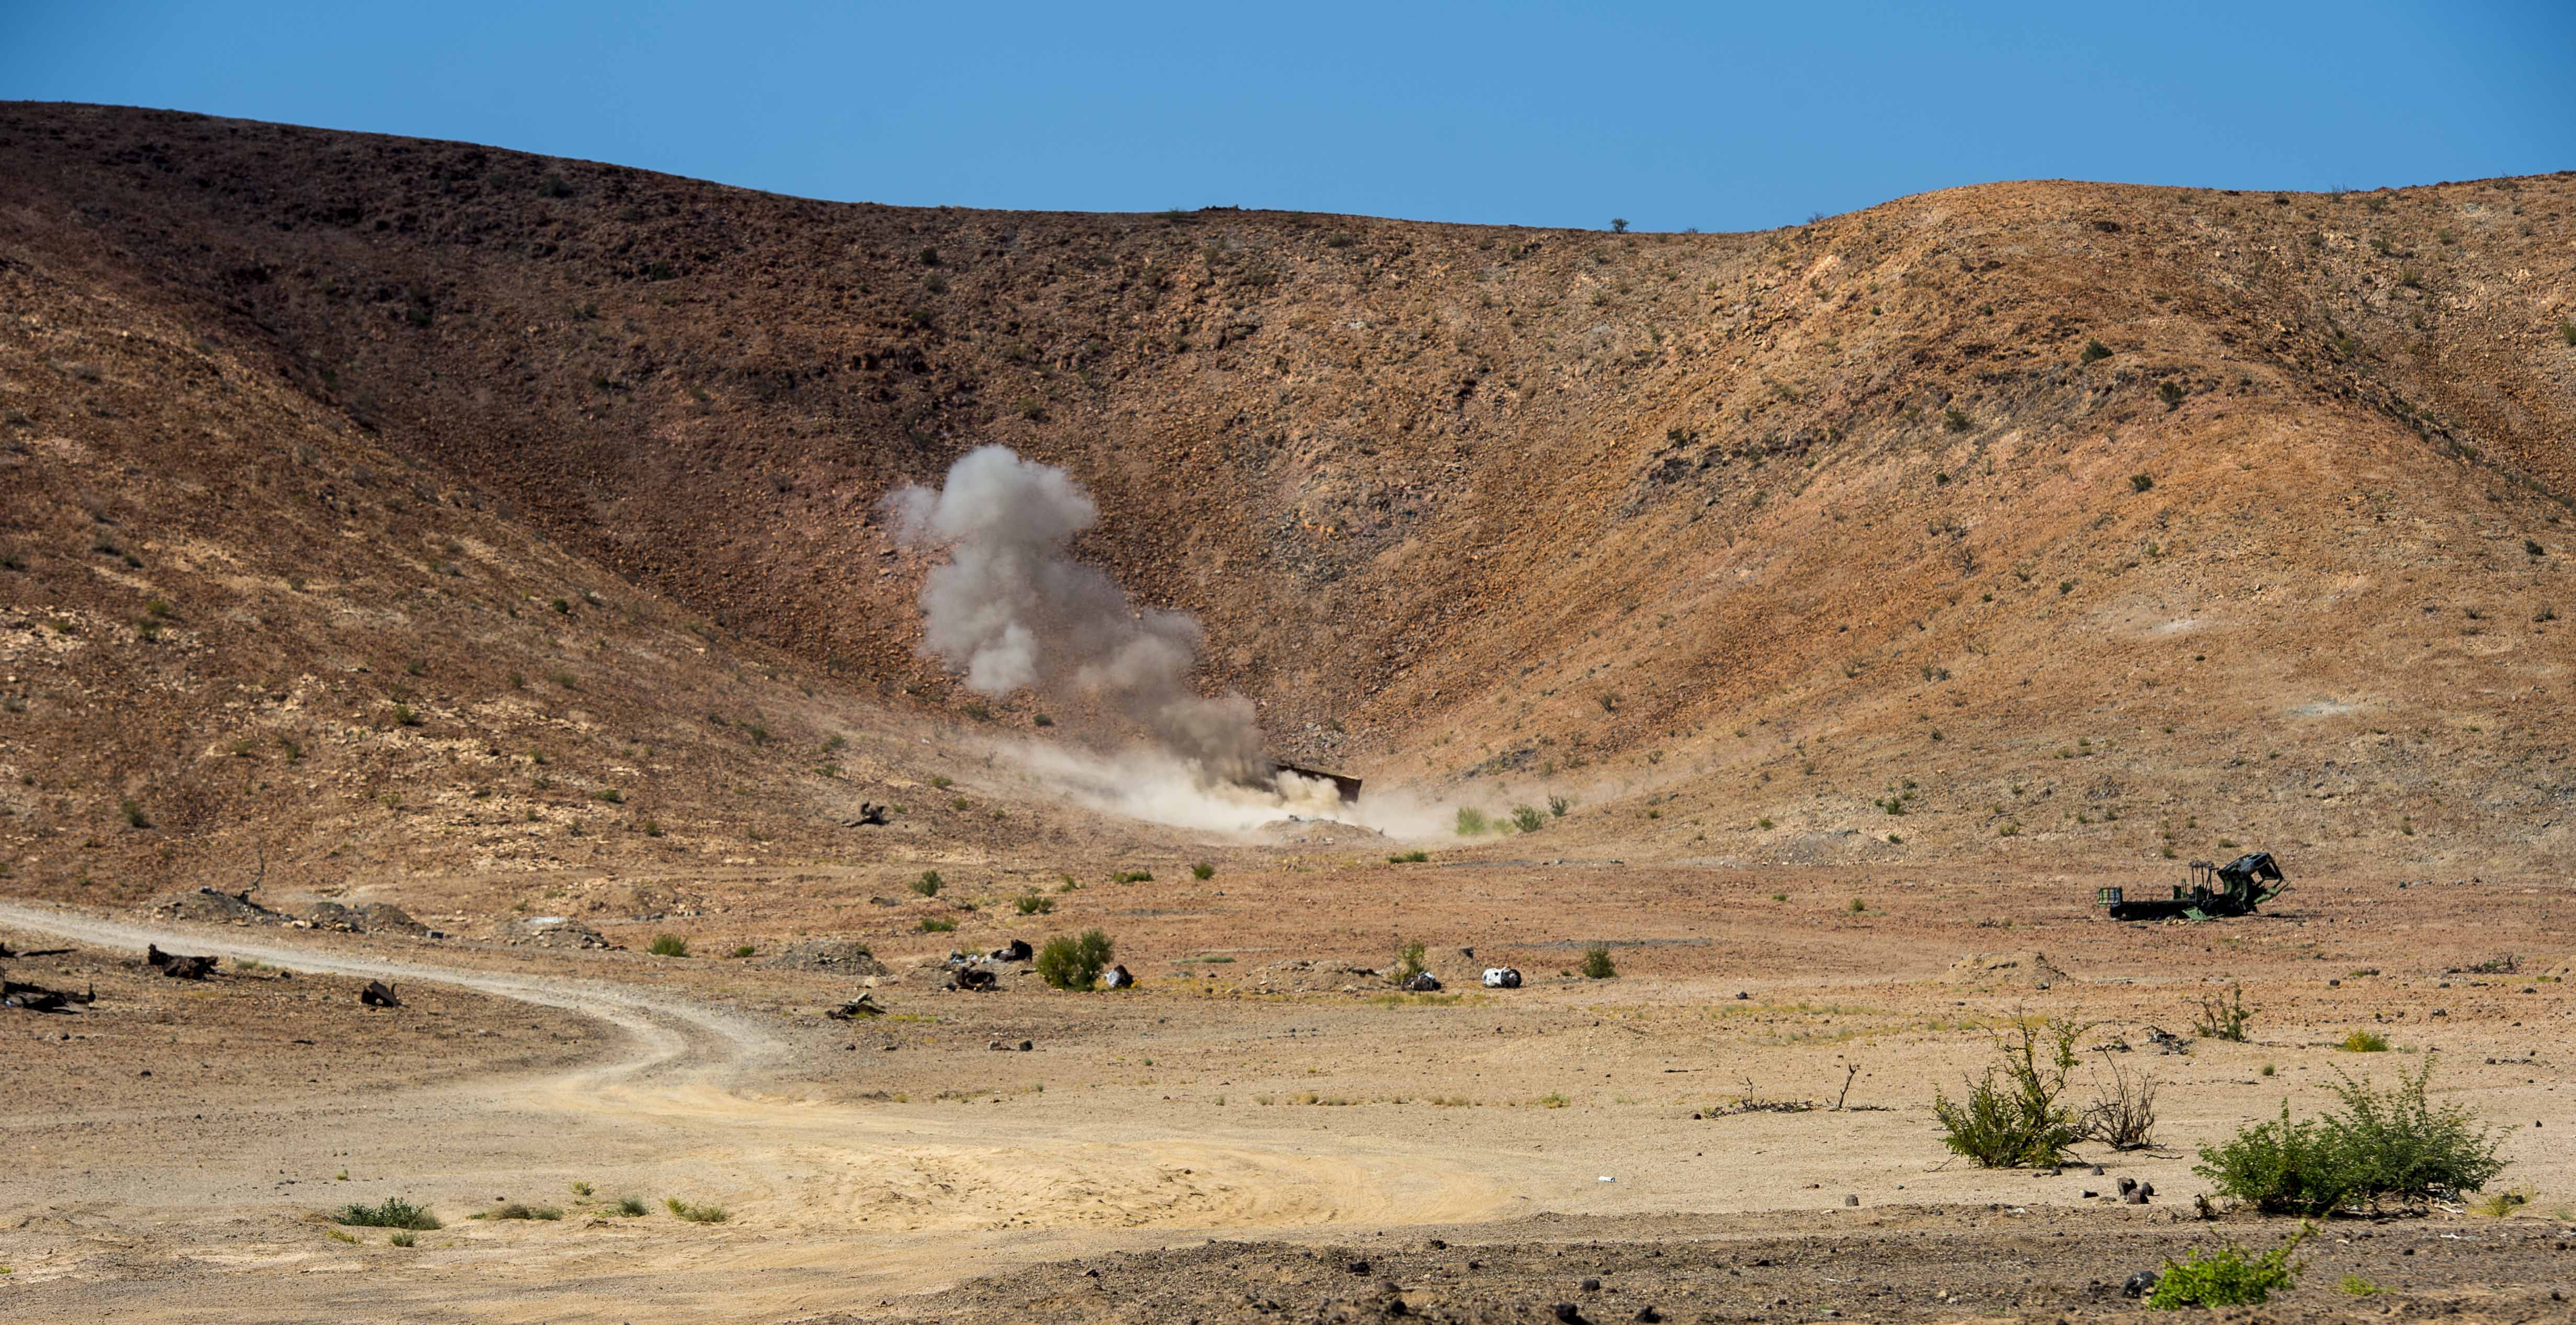 The Combined Joint Task Force- Horn of Africa Explosive Ordnance Disposal team detonates unexploded ordnance (UXO) found during range clearing near Camp Lemonnier, Djibouti, Nov. 6, 2017. Teams from the U.S. and France spent the day sweeping cordoned sections of the range and detonating UXO found in the area. The mission promotes partnerships between the two militaries while providing safer routes of travel through the area. (U.S. Air Force photo by Staff Sgt. Timothy Moore